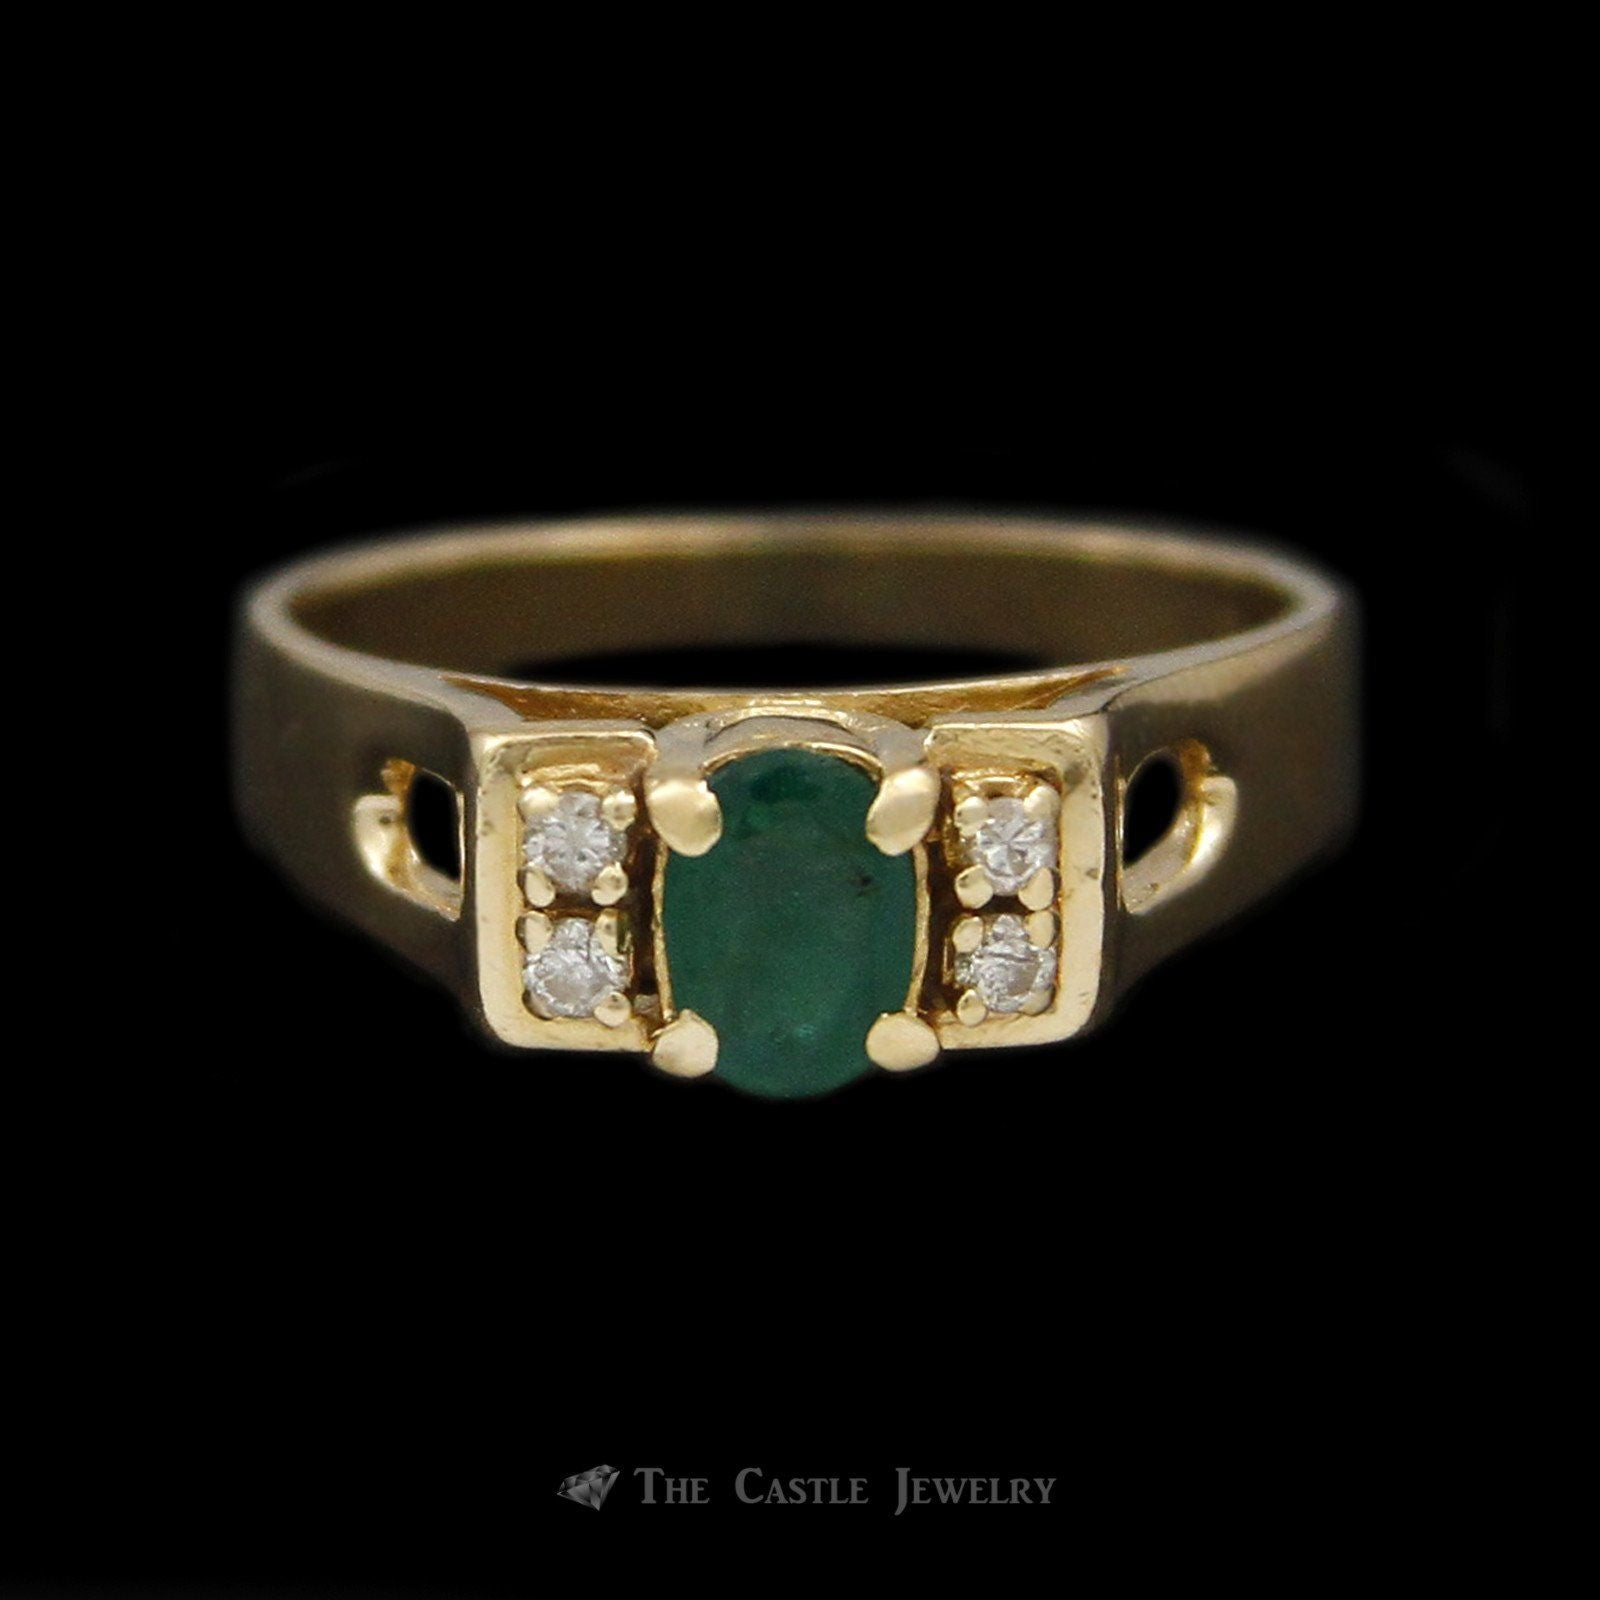 Oval Emerald Ring in Rectangular Mounting & Diamond Accents in 14K Yellow Gold